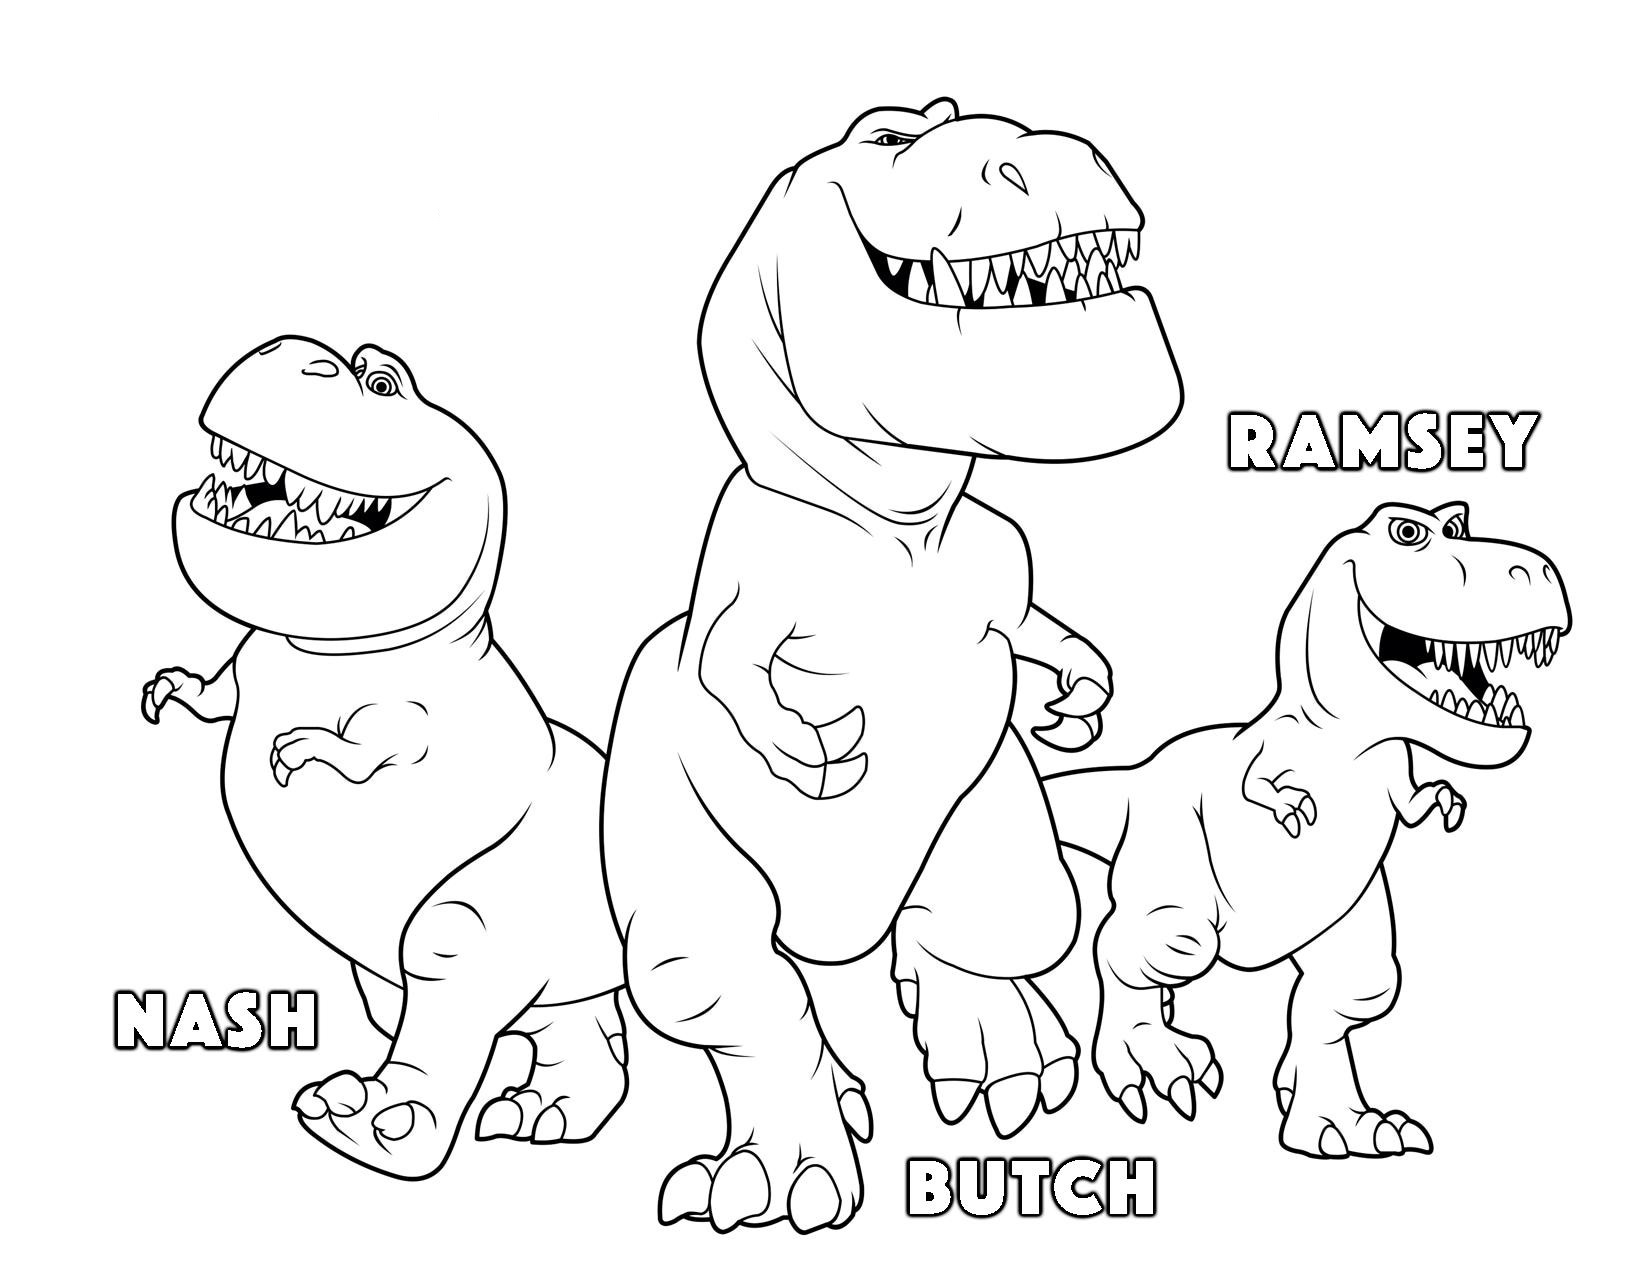 Printable the good dinosaur Butch Ramsey Nash coloring pages for kids